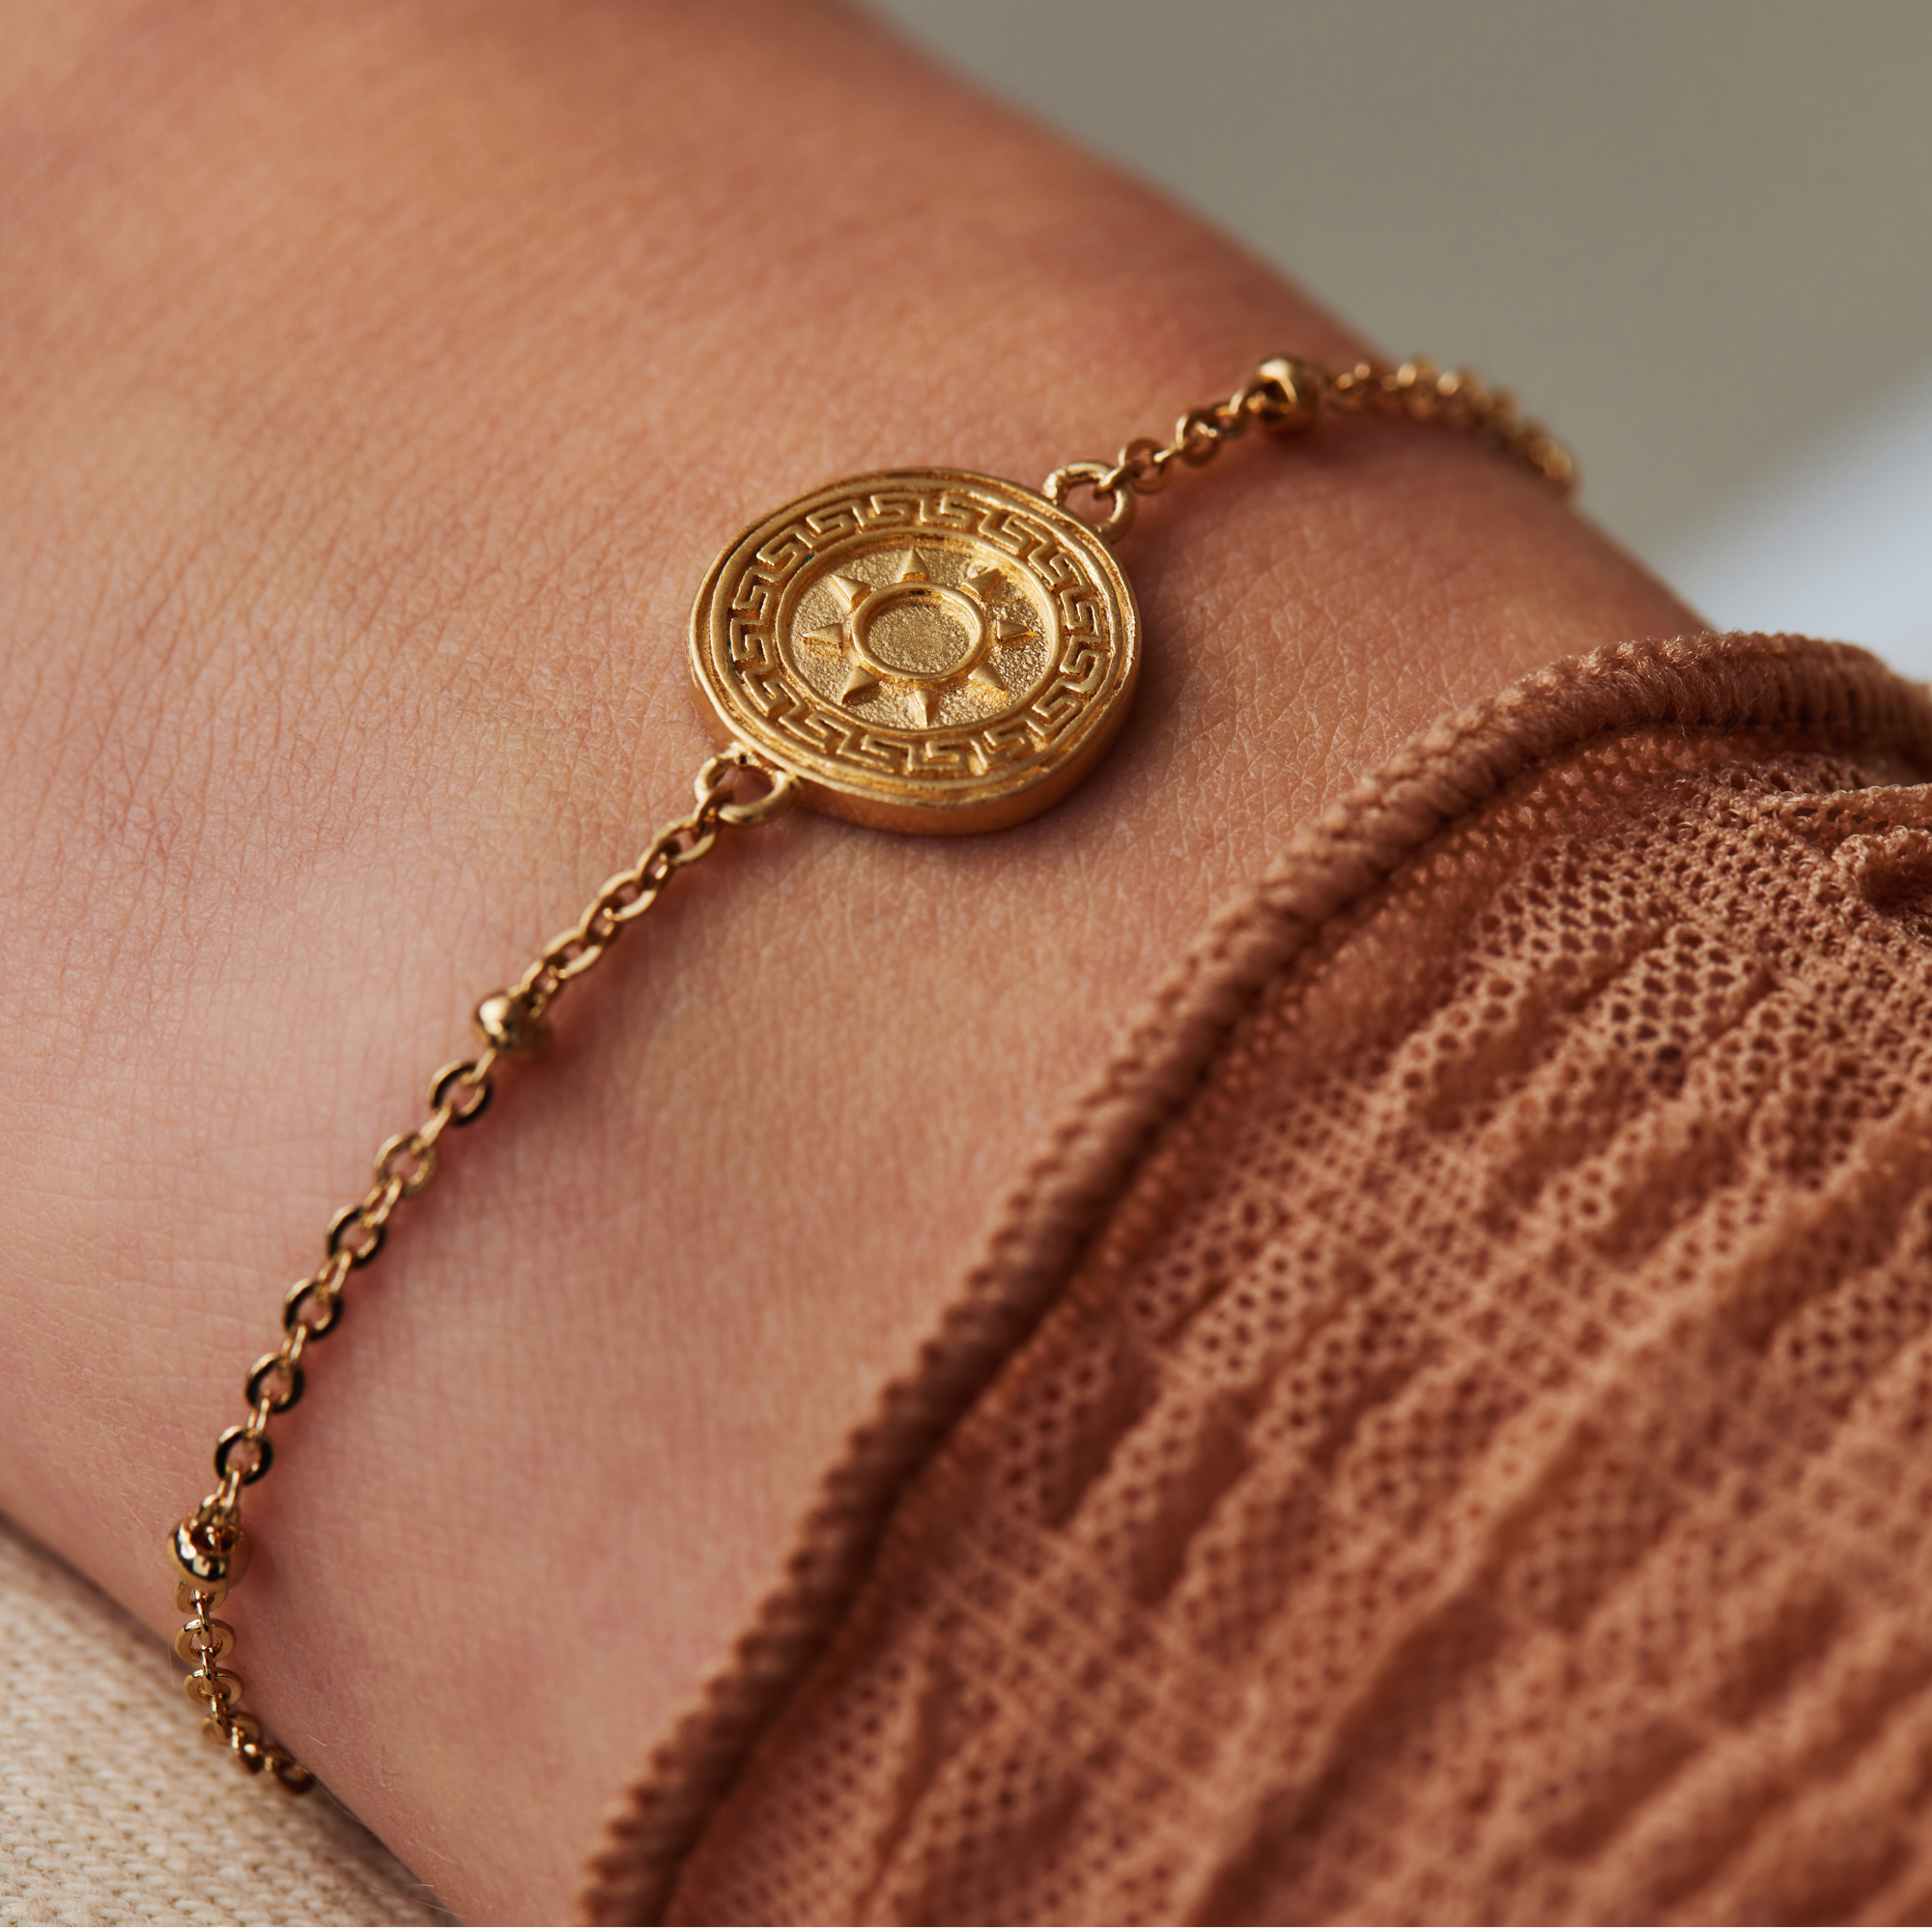 Violet Hamden Athens 925 sterling silver gold colored bracelet with coin and spheres